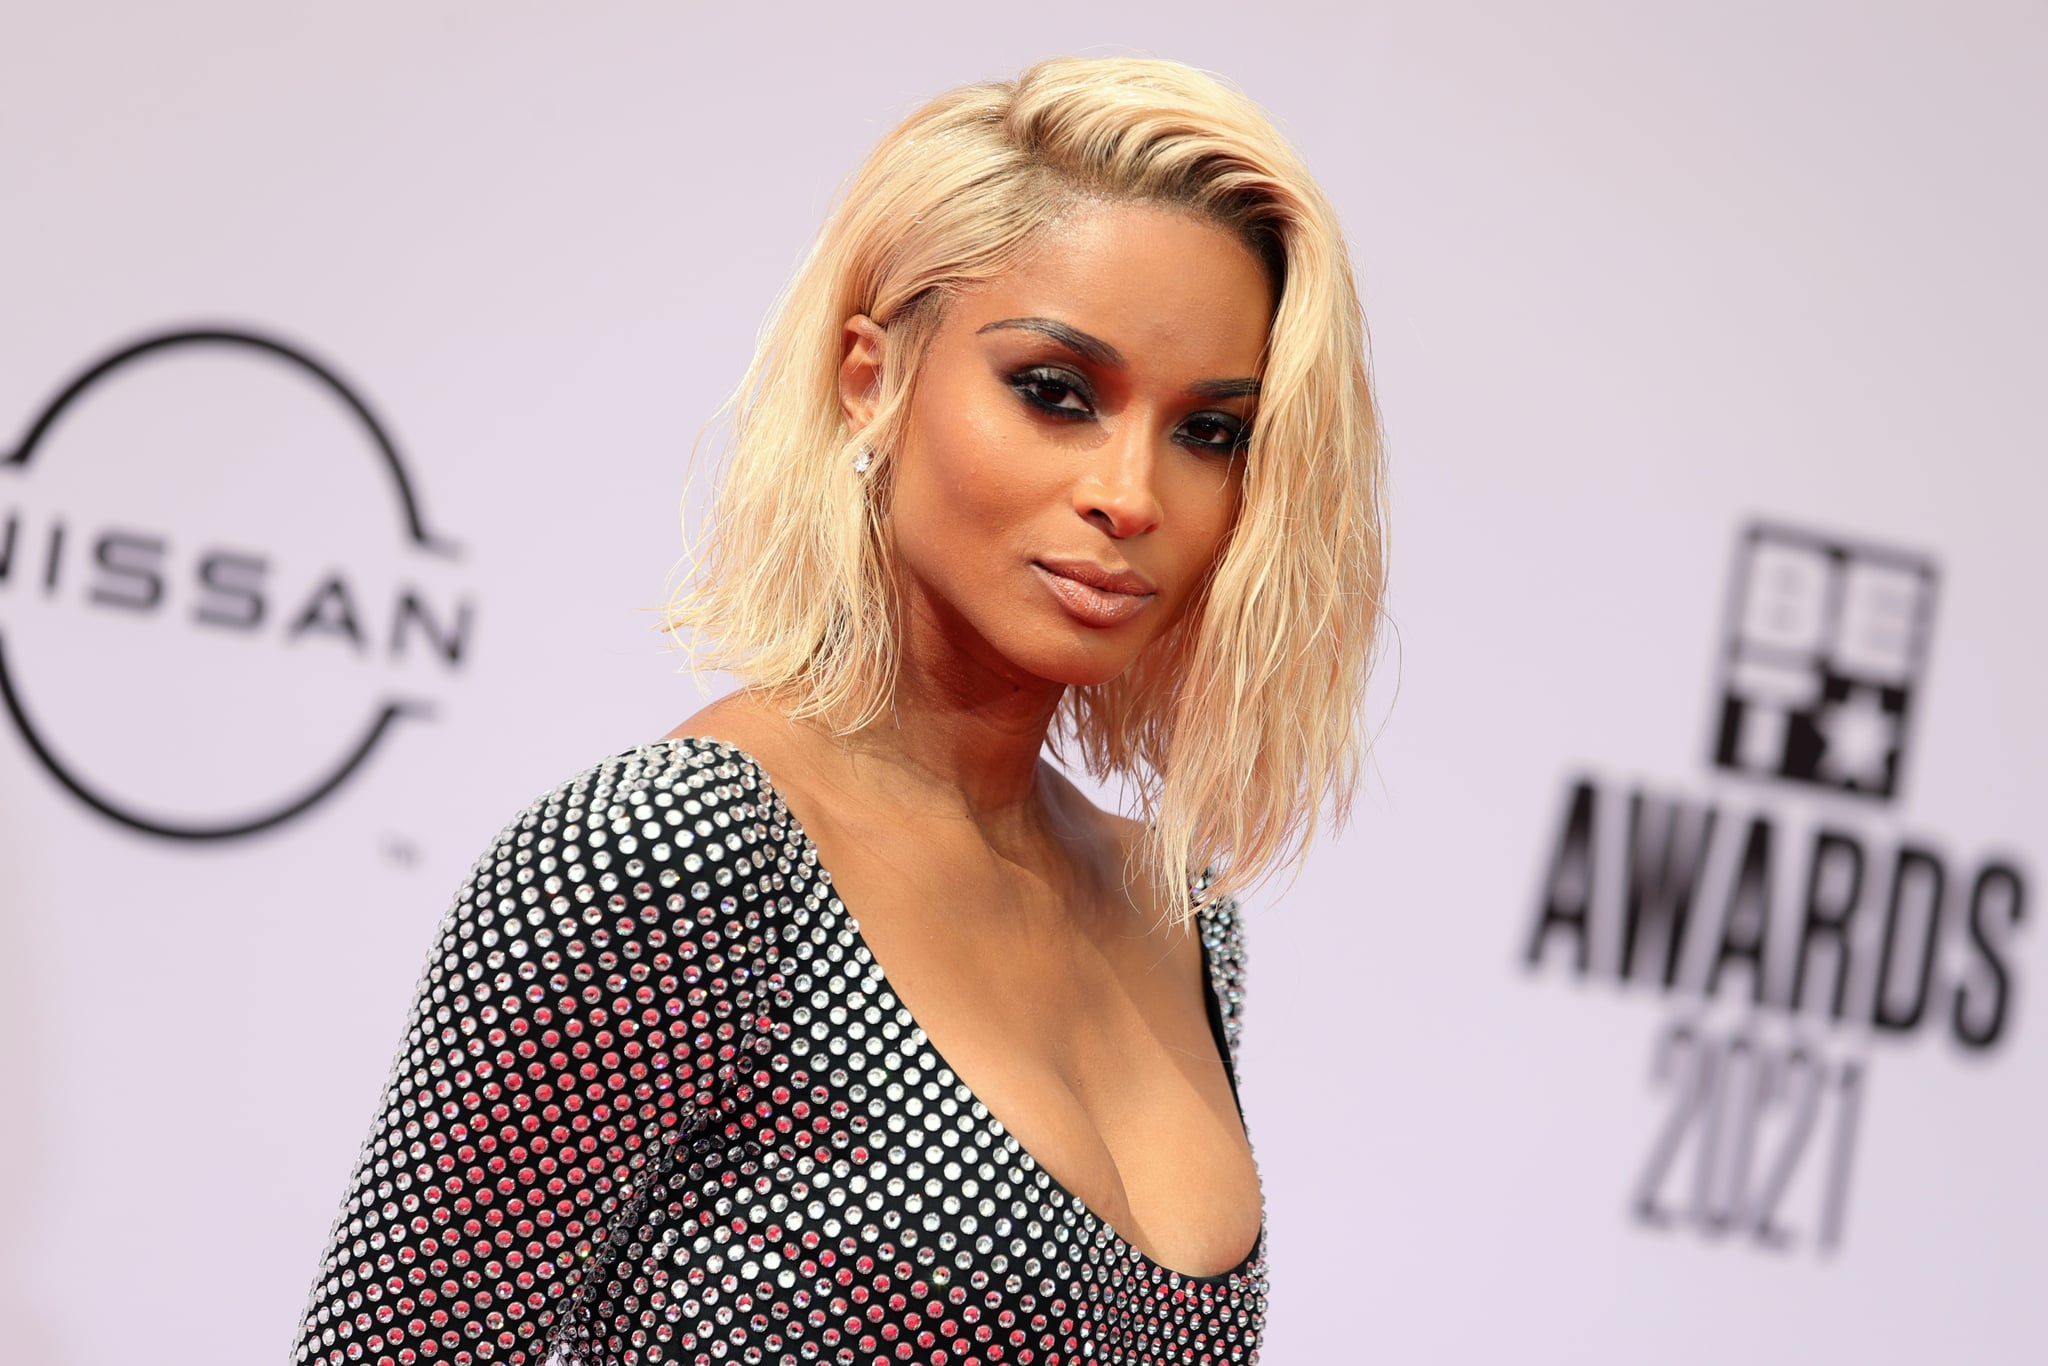 LOS ANGELES, CALIFORNIA - JUNE 27: Ciara attends the BET Awards 2021 at Microsoft Theater on June 27, 2021 in Los Angeles, California. (Photo by Rich Fury/Getty Images,,)